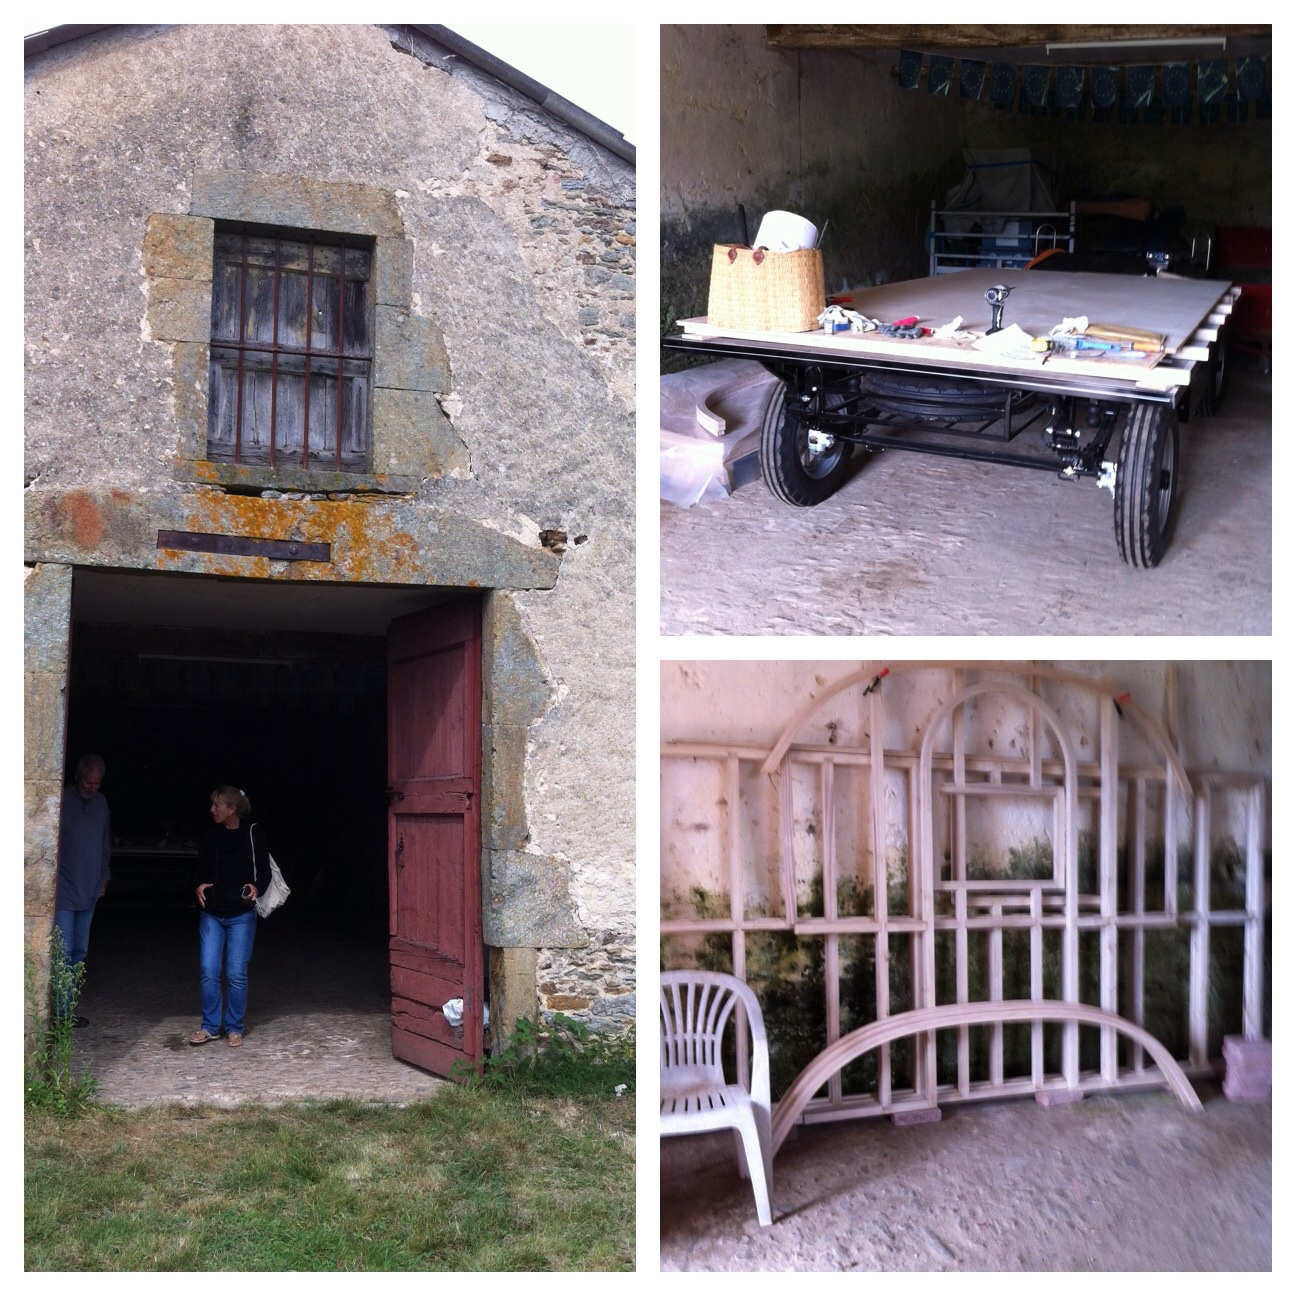 on the left is the barn and top right is the newly constructed wagon chasis and the bottom right is the back wall frame of the caravan.